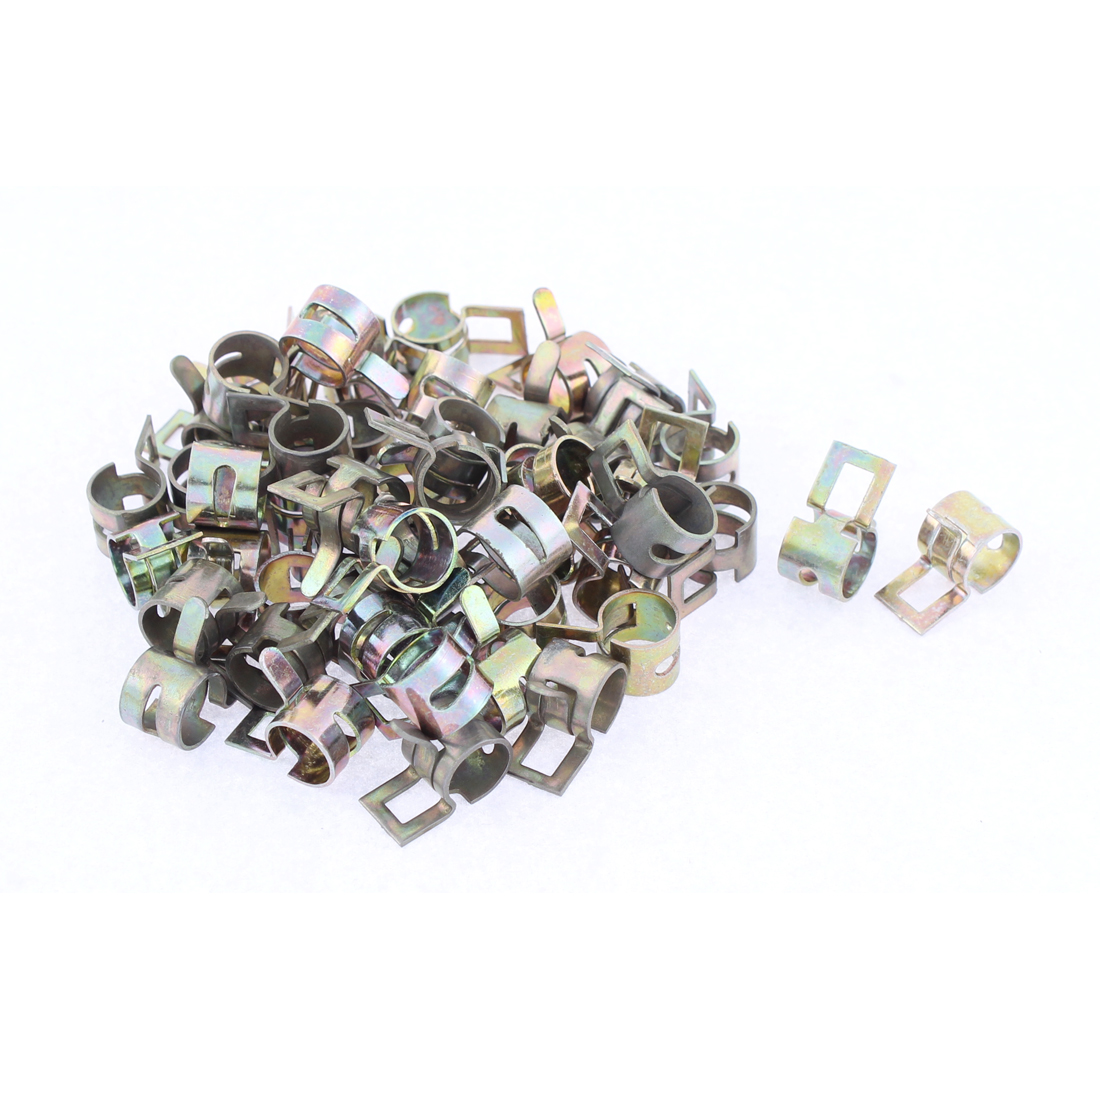 50 Pcs Metal Spring Clip for Fuel Silicone Vacuum Hose Clamp